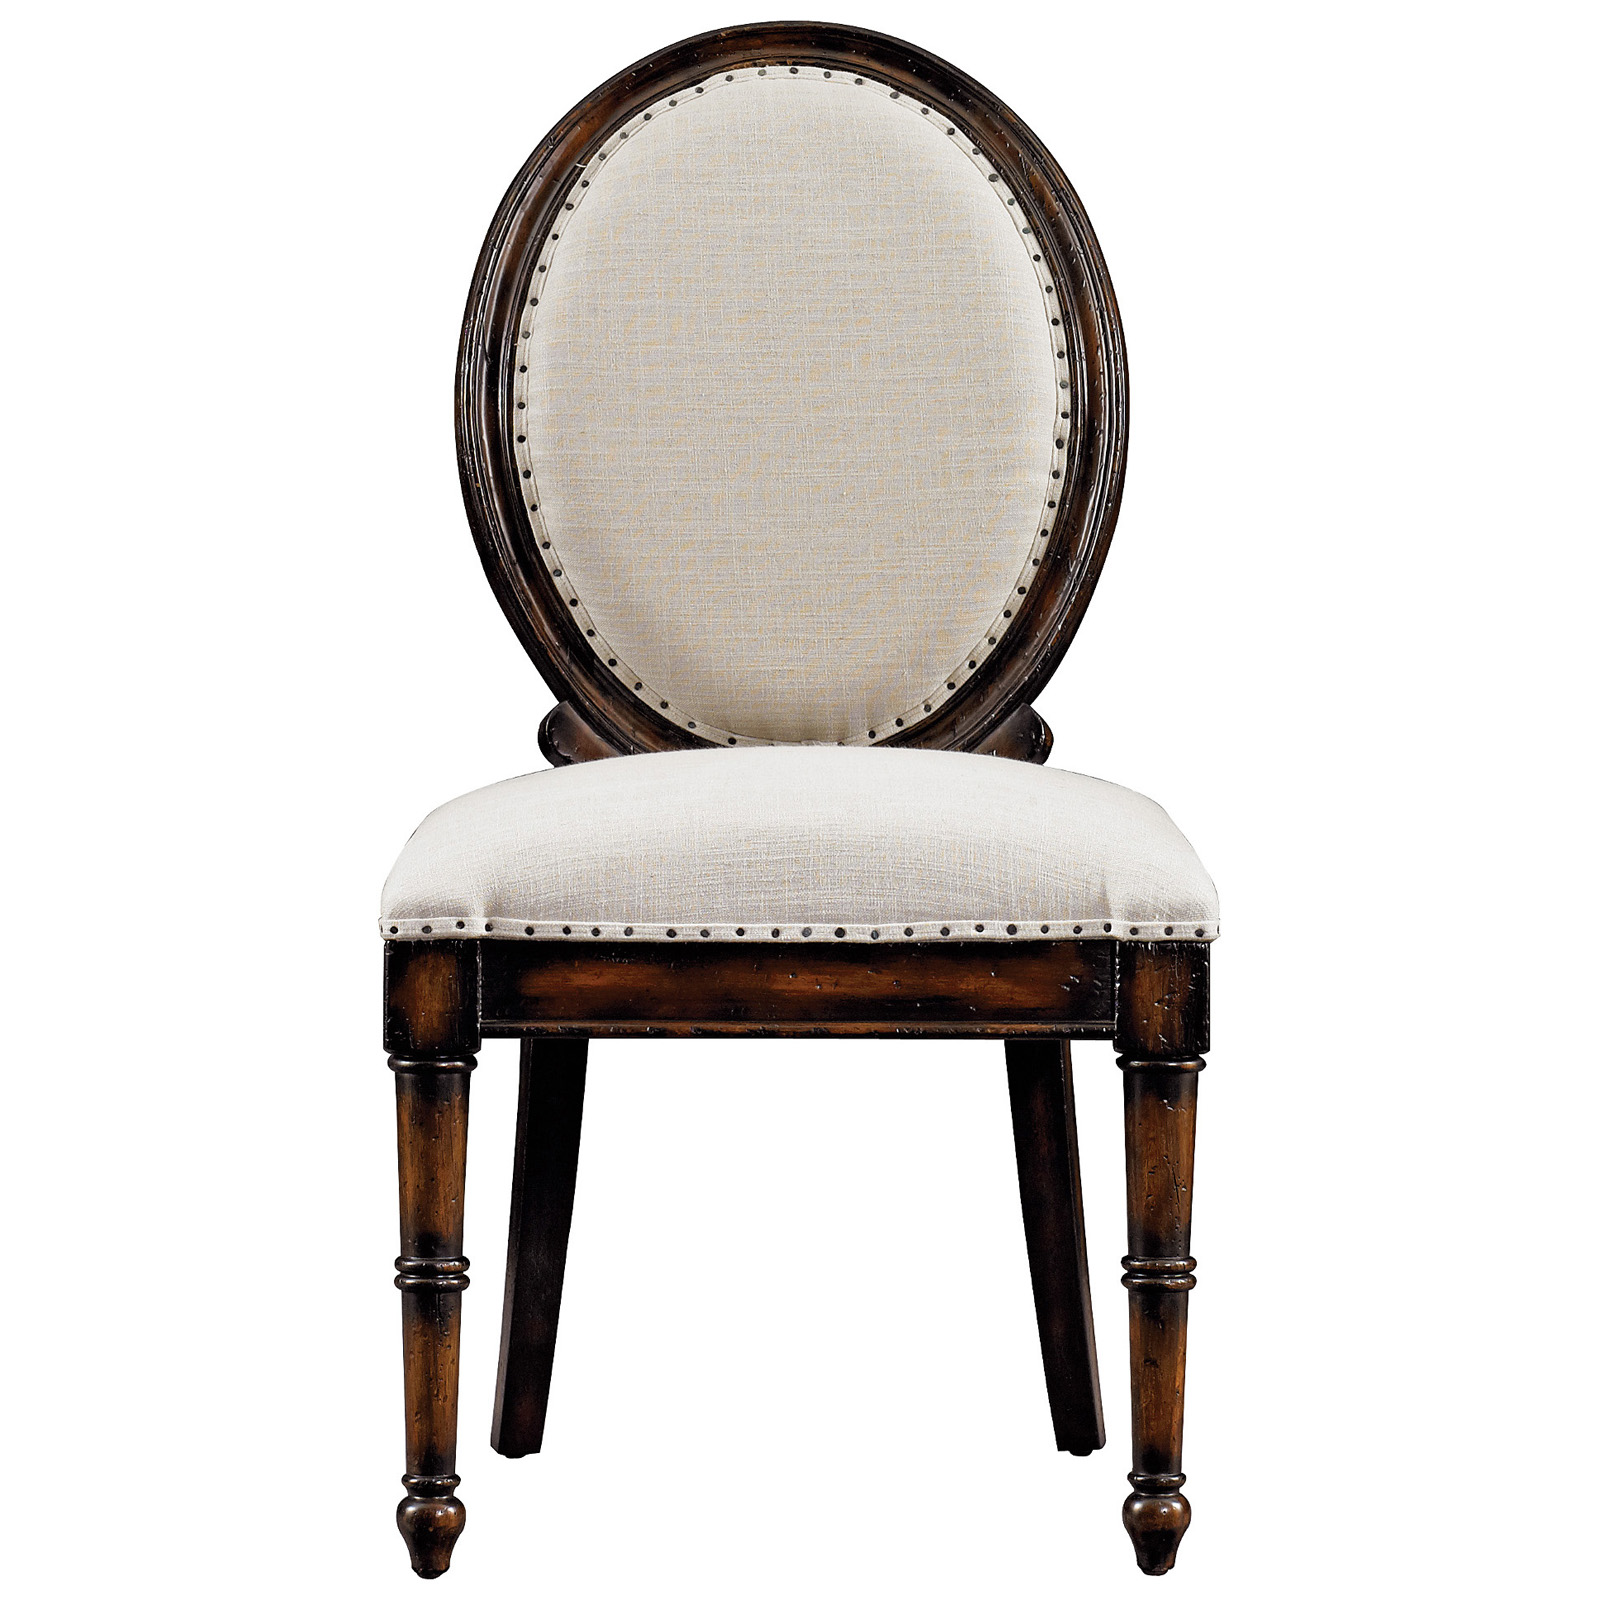 Stanley Furniture European Farmhouse #36: Stanley European Farmhouse Million Stars Side Chair - Dining Chairs At Hayneedle